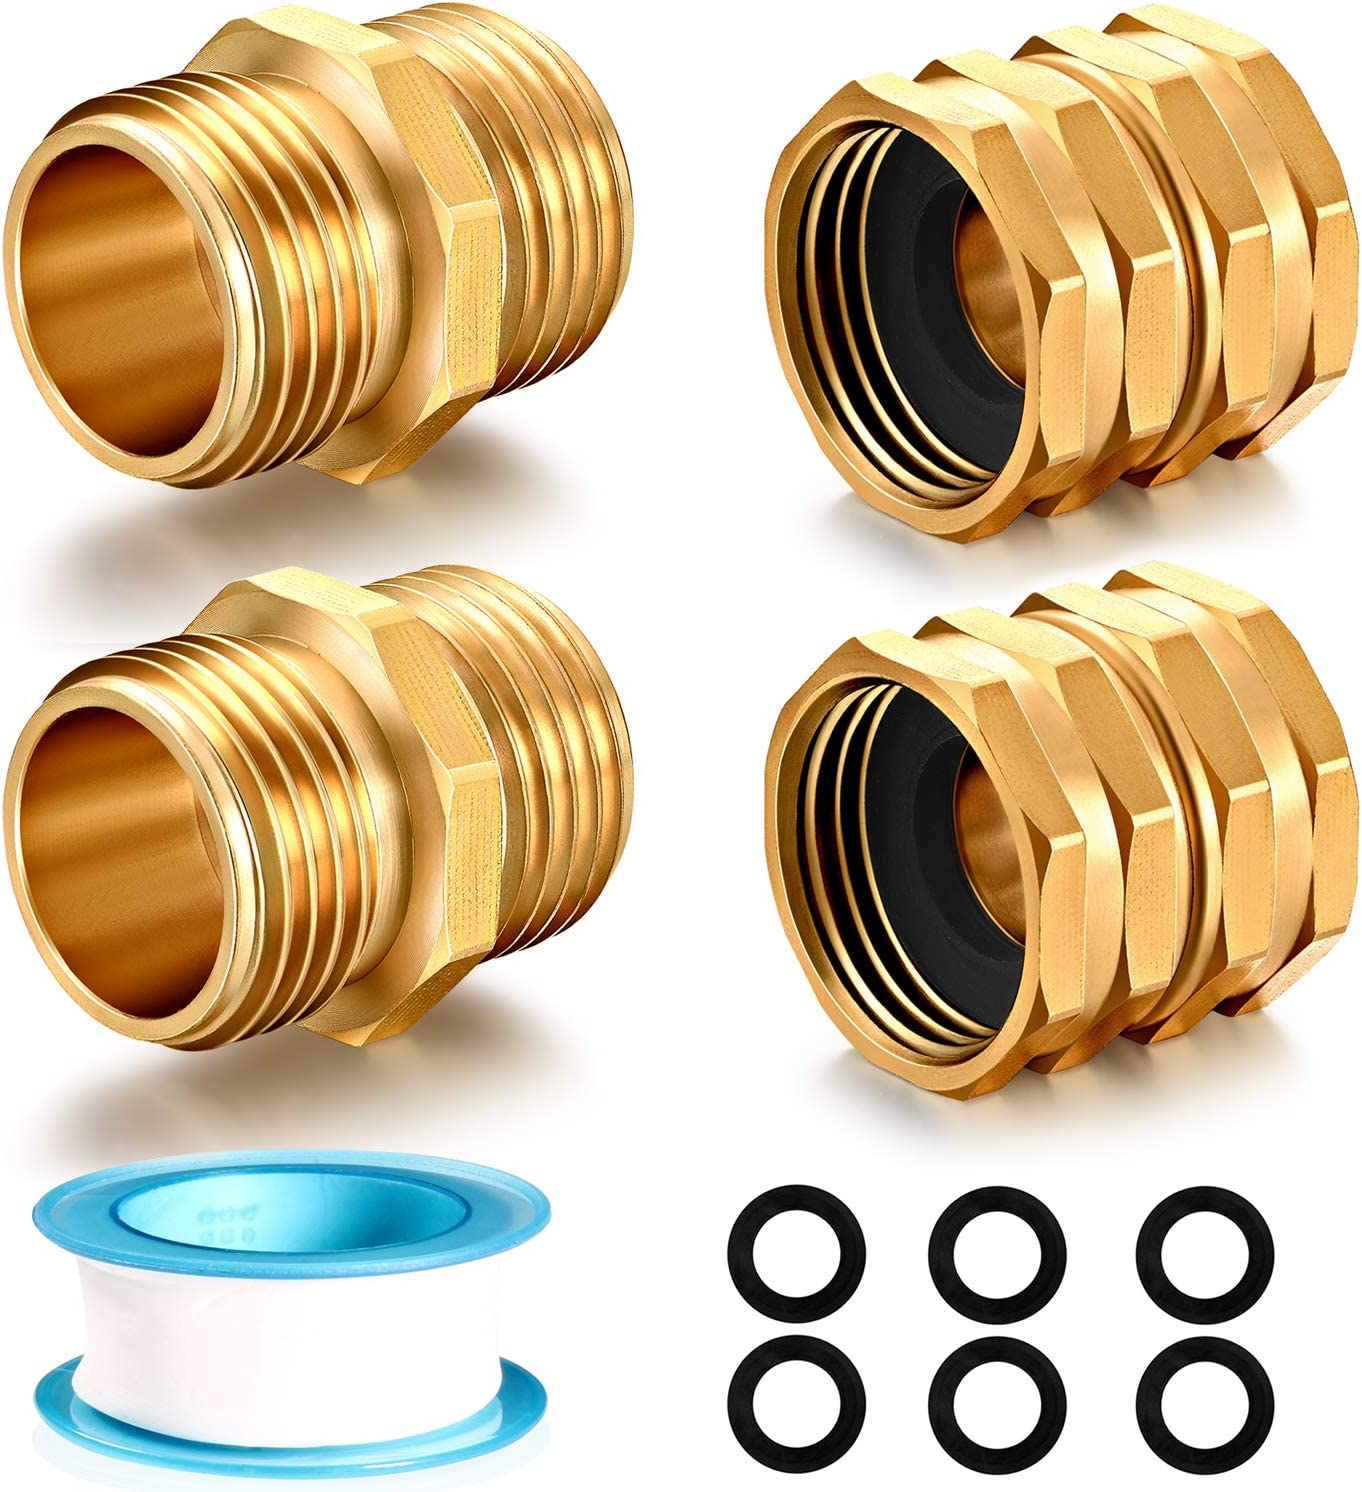 YELUN Solid brass Garden Hose Fittings Connectors Adapter Heavy Duty Brass Repair Male to Male, Female faucet leader coupler dual water hose connector (3/4